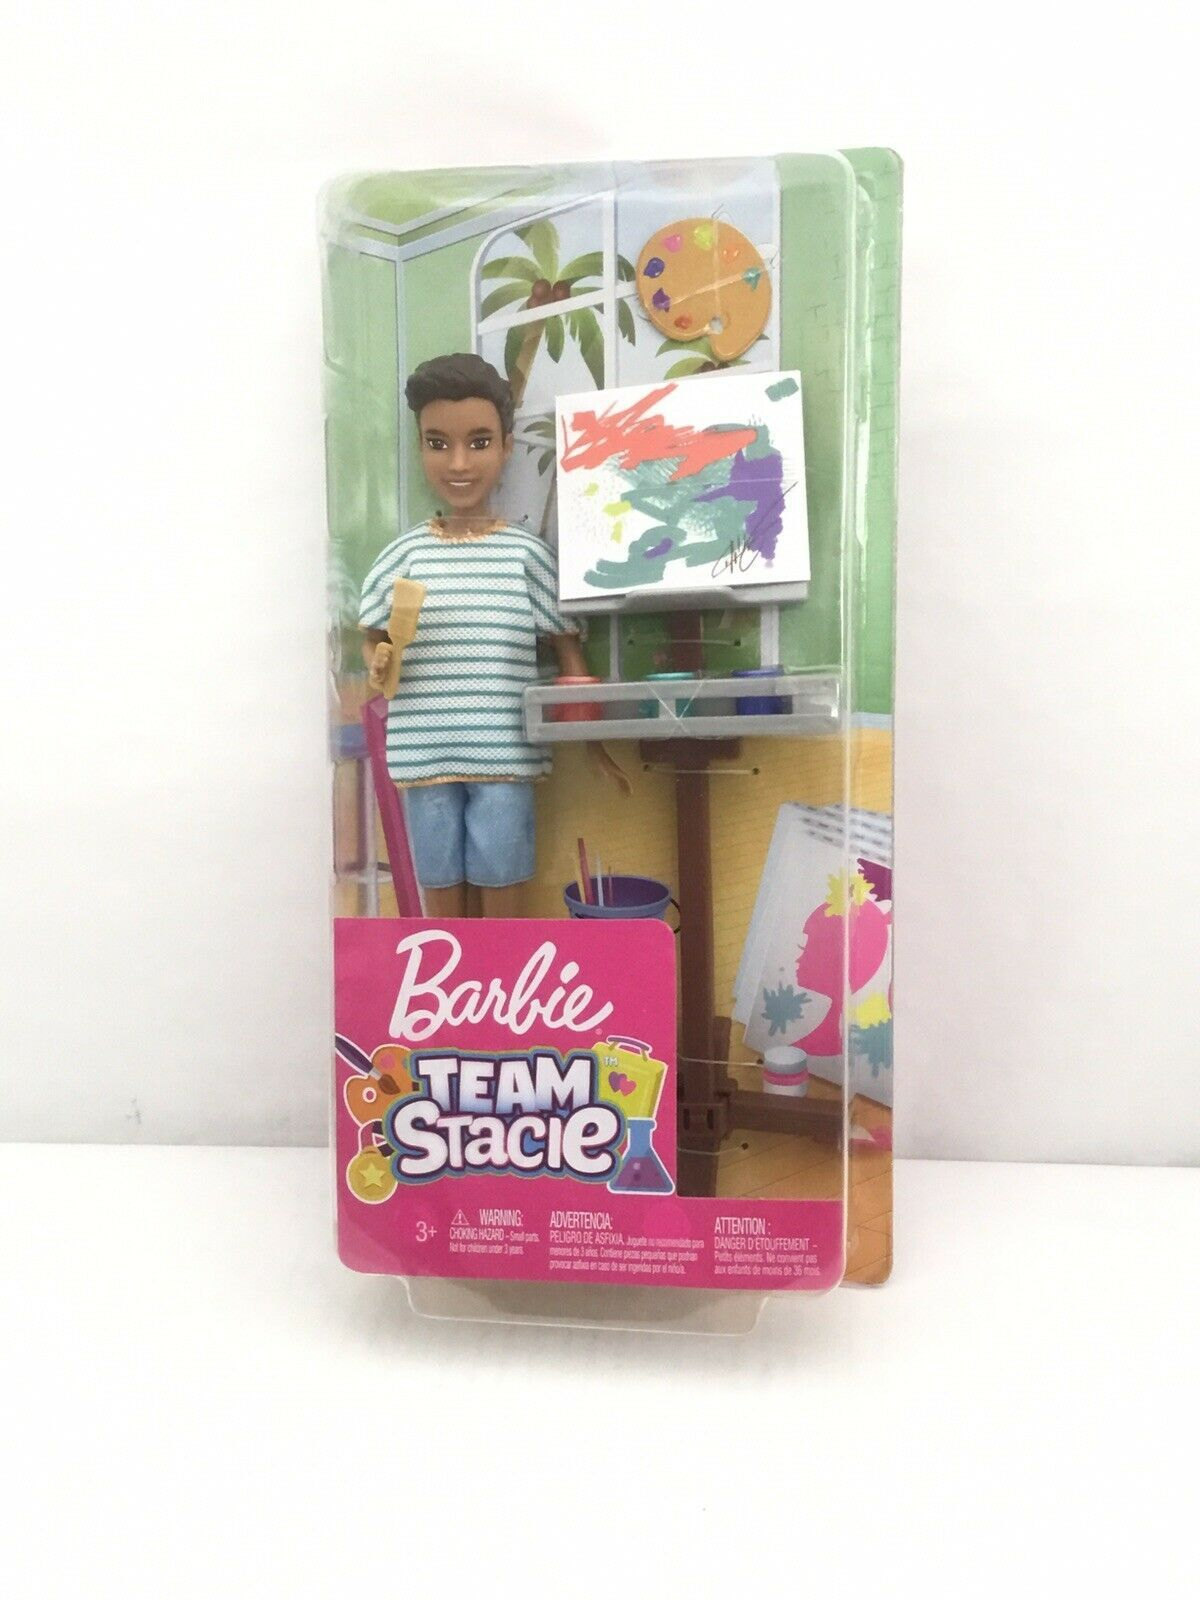 Primary image for Barbie Team Stacie Friend of Stacie Doll Art Class Playset